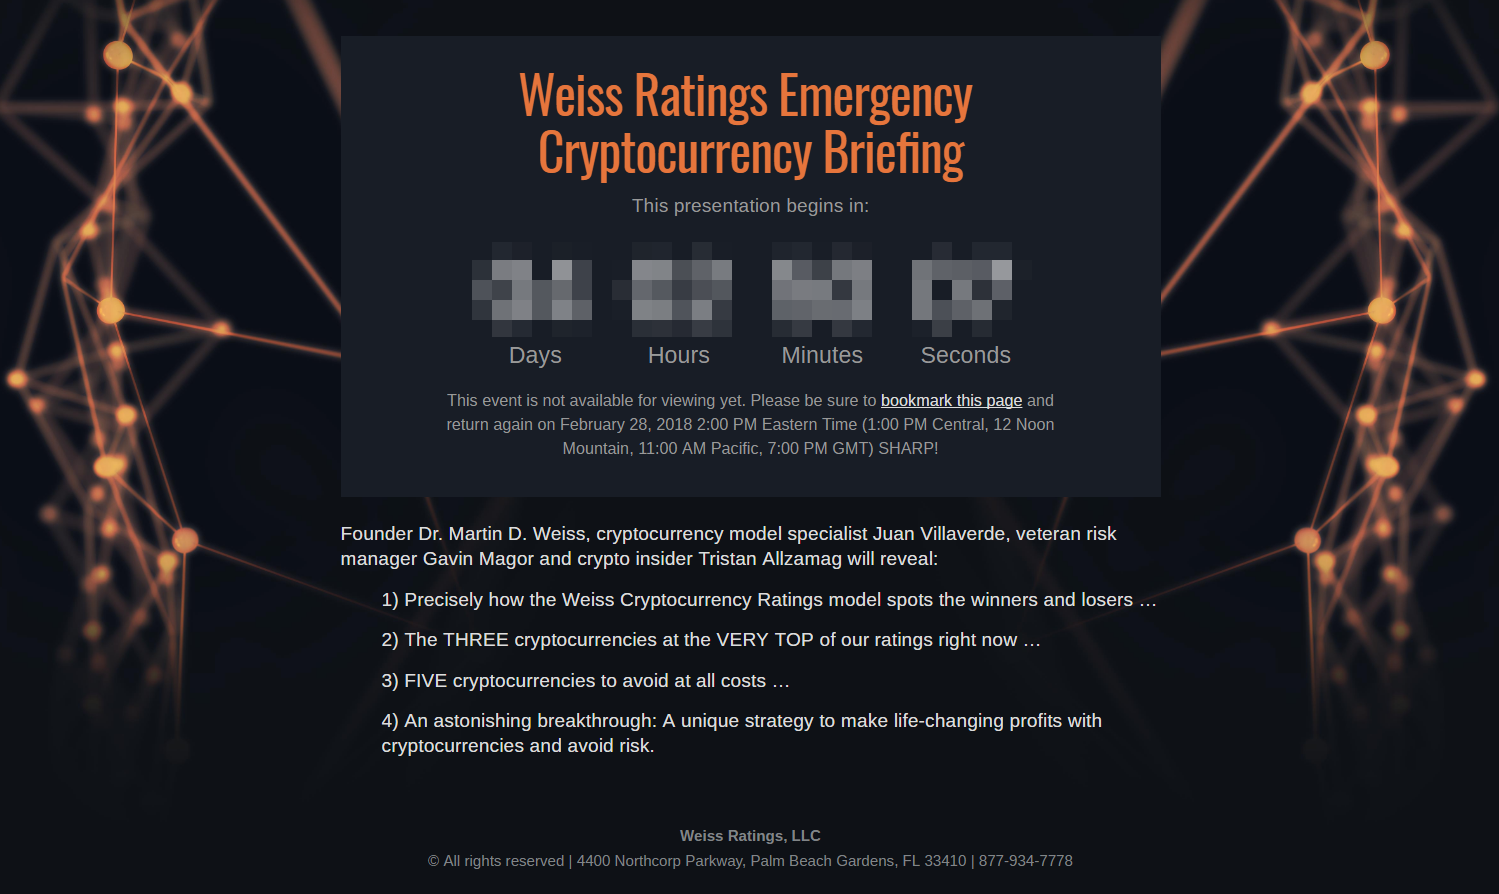 Weiss Ratings Emergency Cryptocurrency Briefing